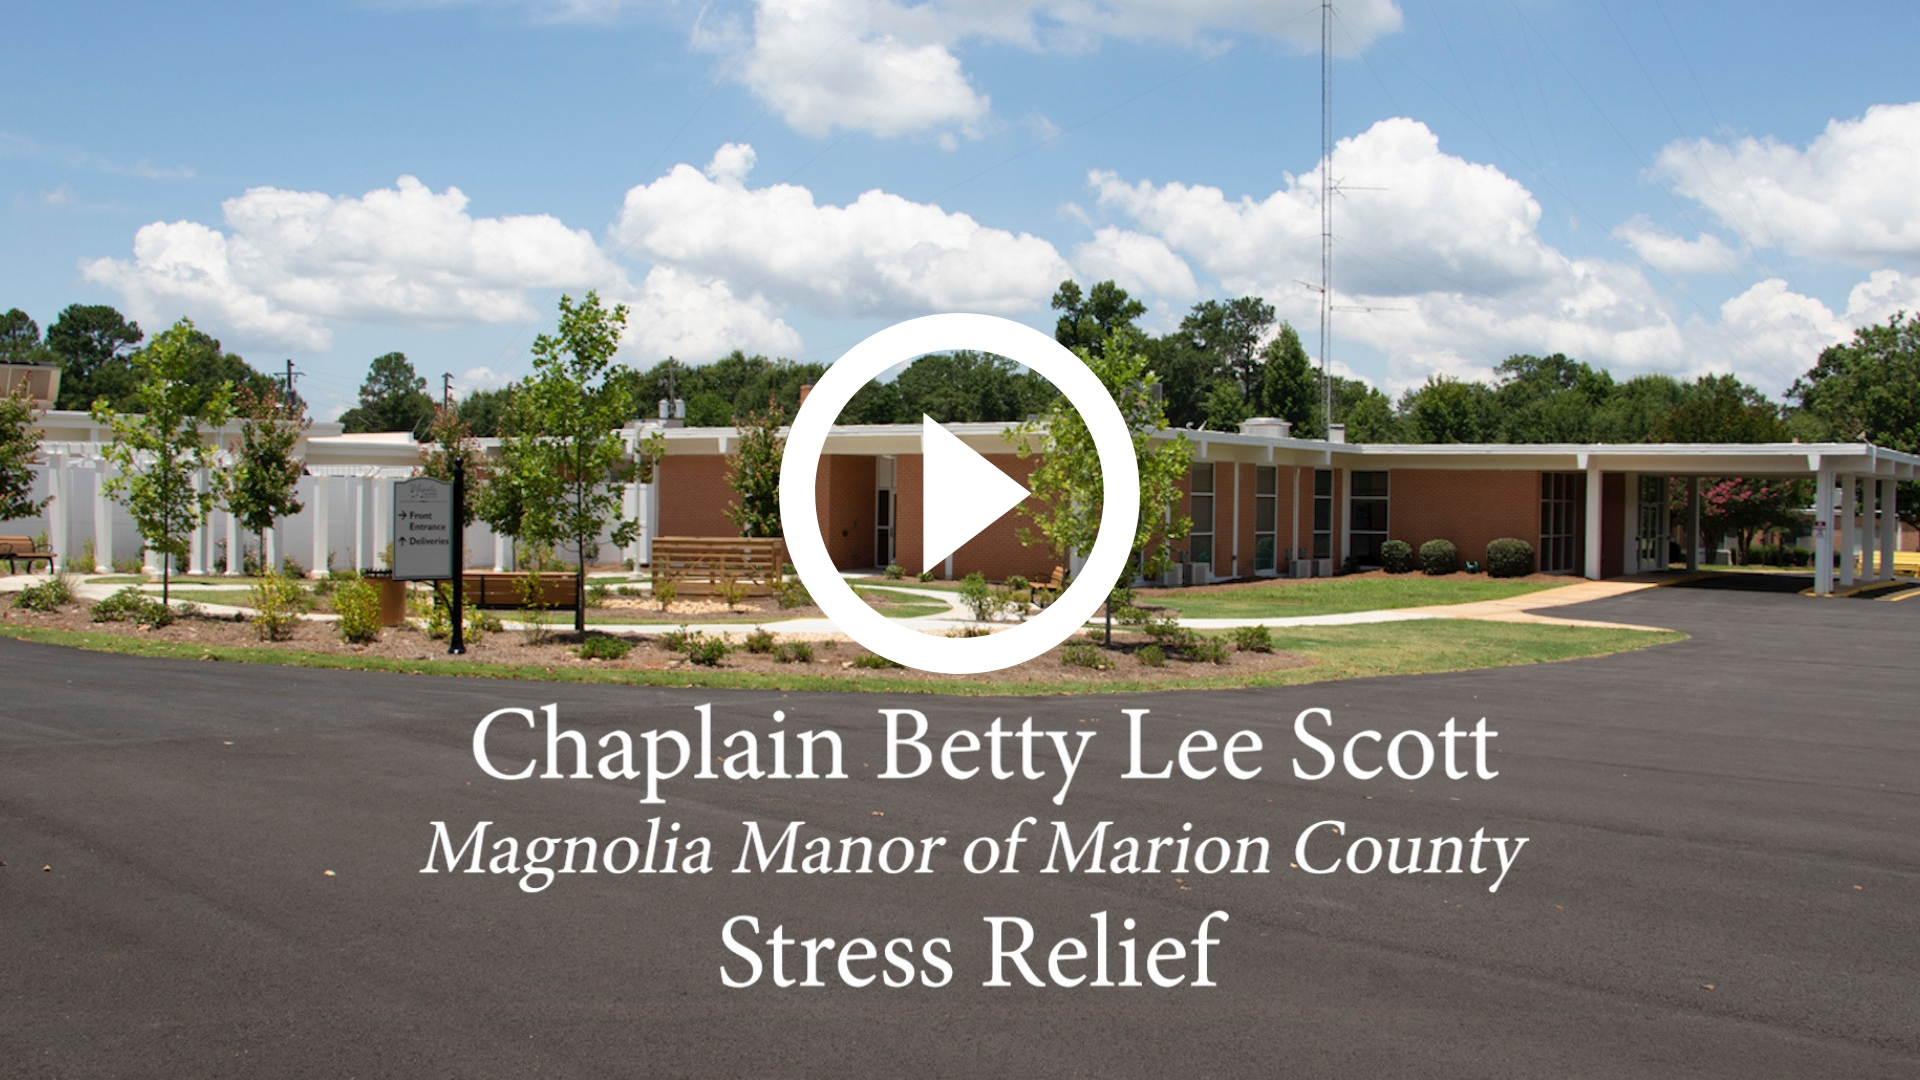 Chaplain Betty Lee Scott - Dealing with Stress